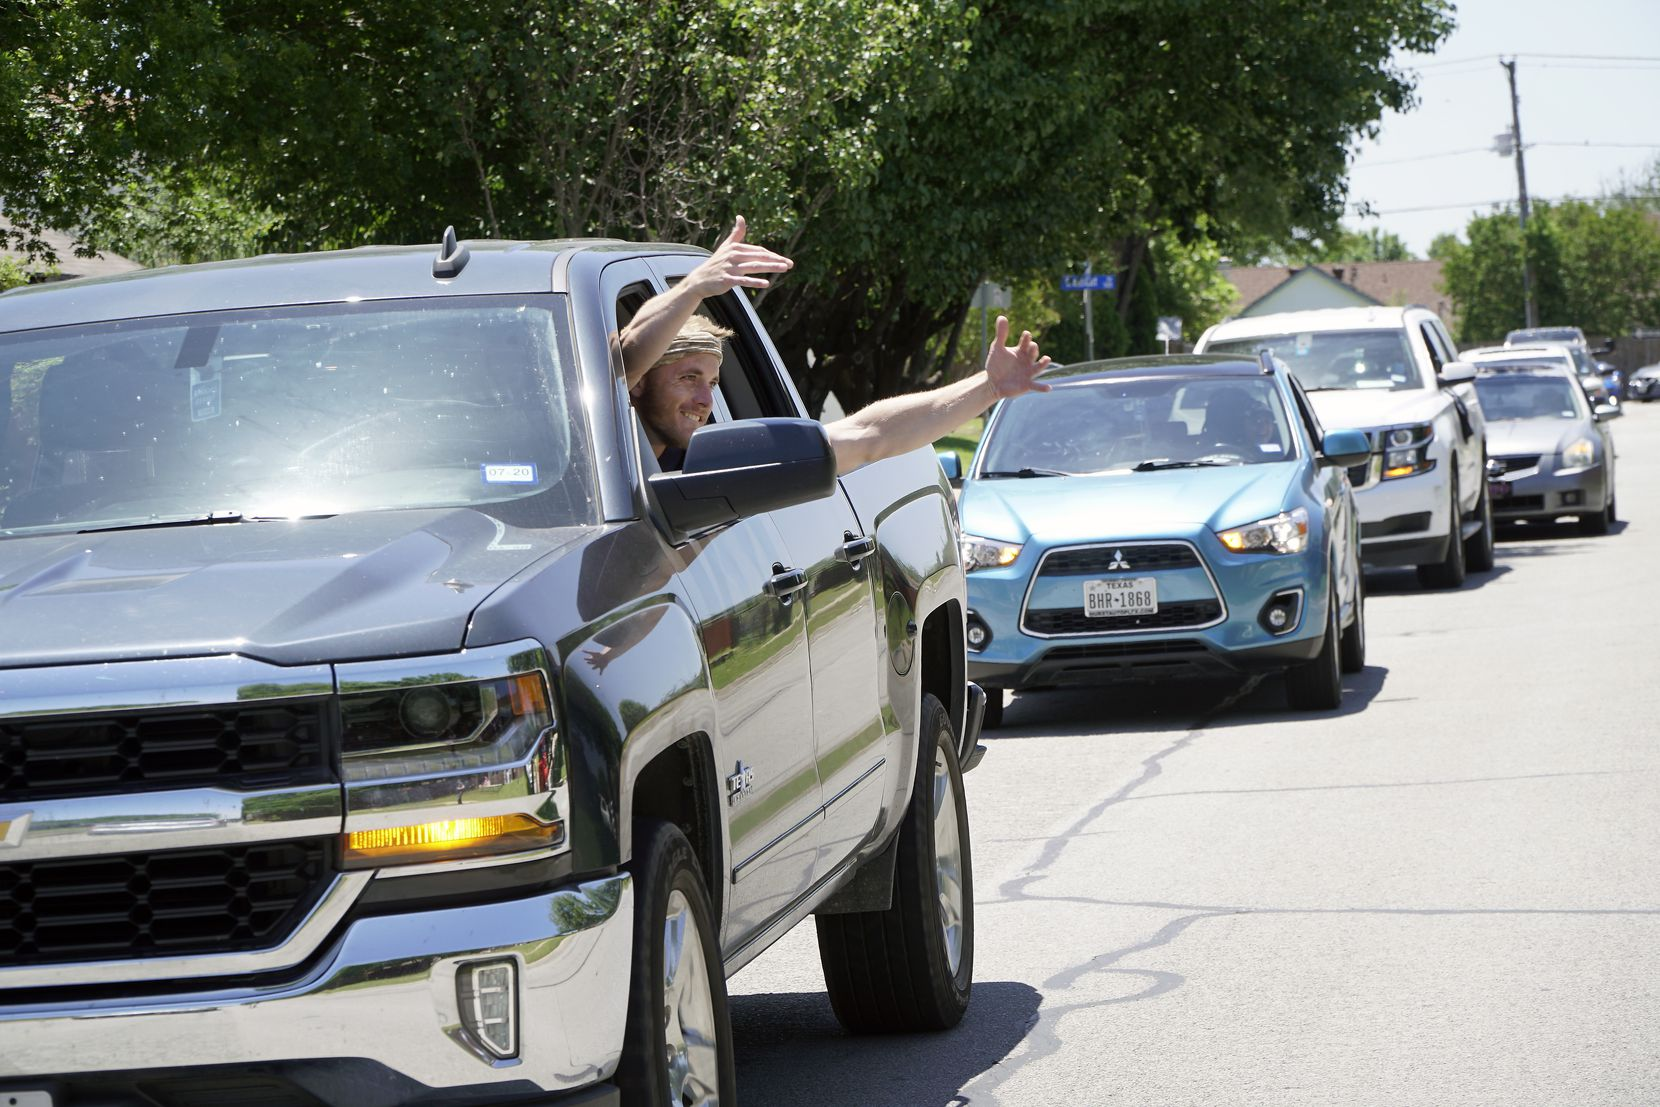 International Leadership of Texas faculty and students did a drive-by parade to celebrate the school's valedictorian Amanpreet Chahal and salutatorian Greta Romero at their homes in Mansfield and Arlington, Texas, on Wednesday, May 6, 2020. The well-wishers blew their horns and gave air hugs.